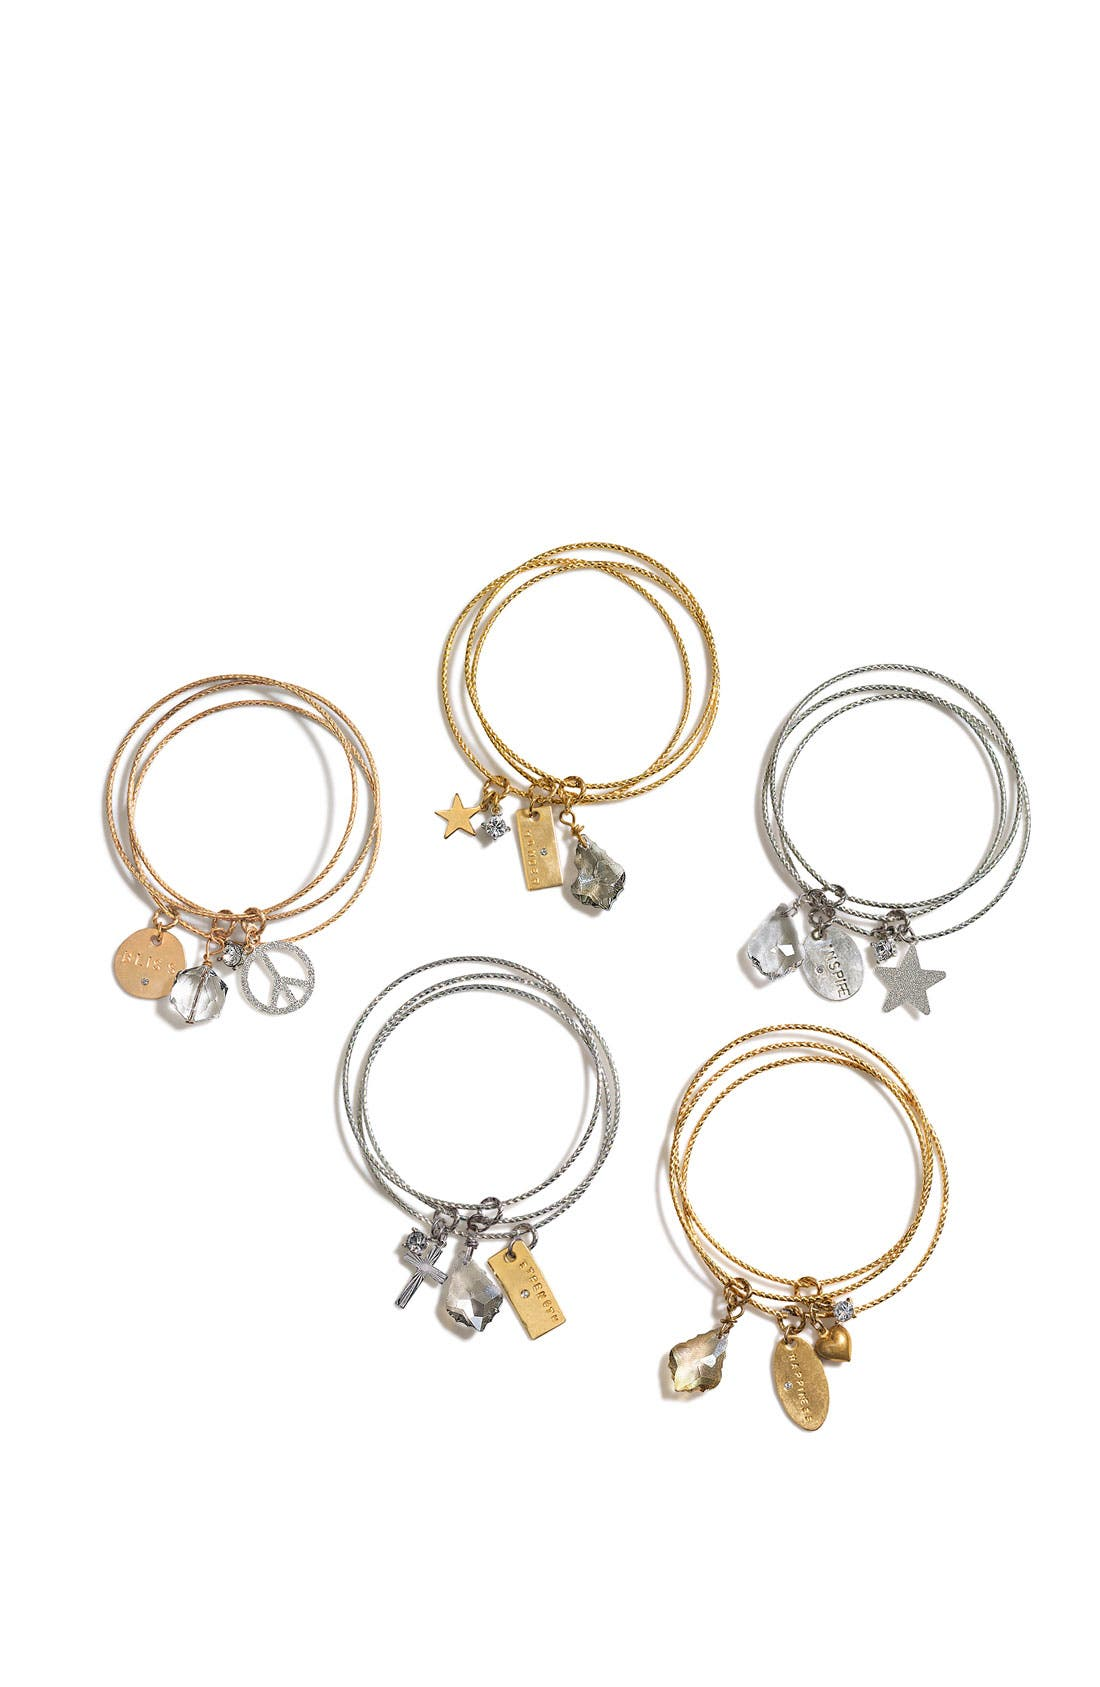 Alternate Image 2  - Nordstrom 'Inspiration Charms - Happiness' Bangles (Set of 3)